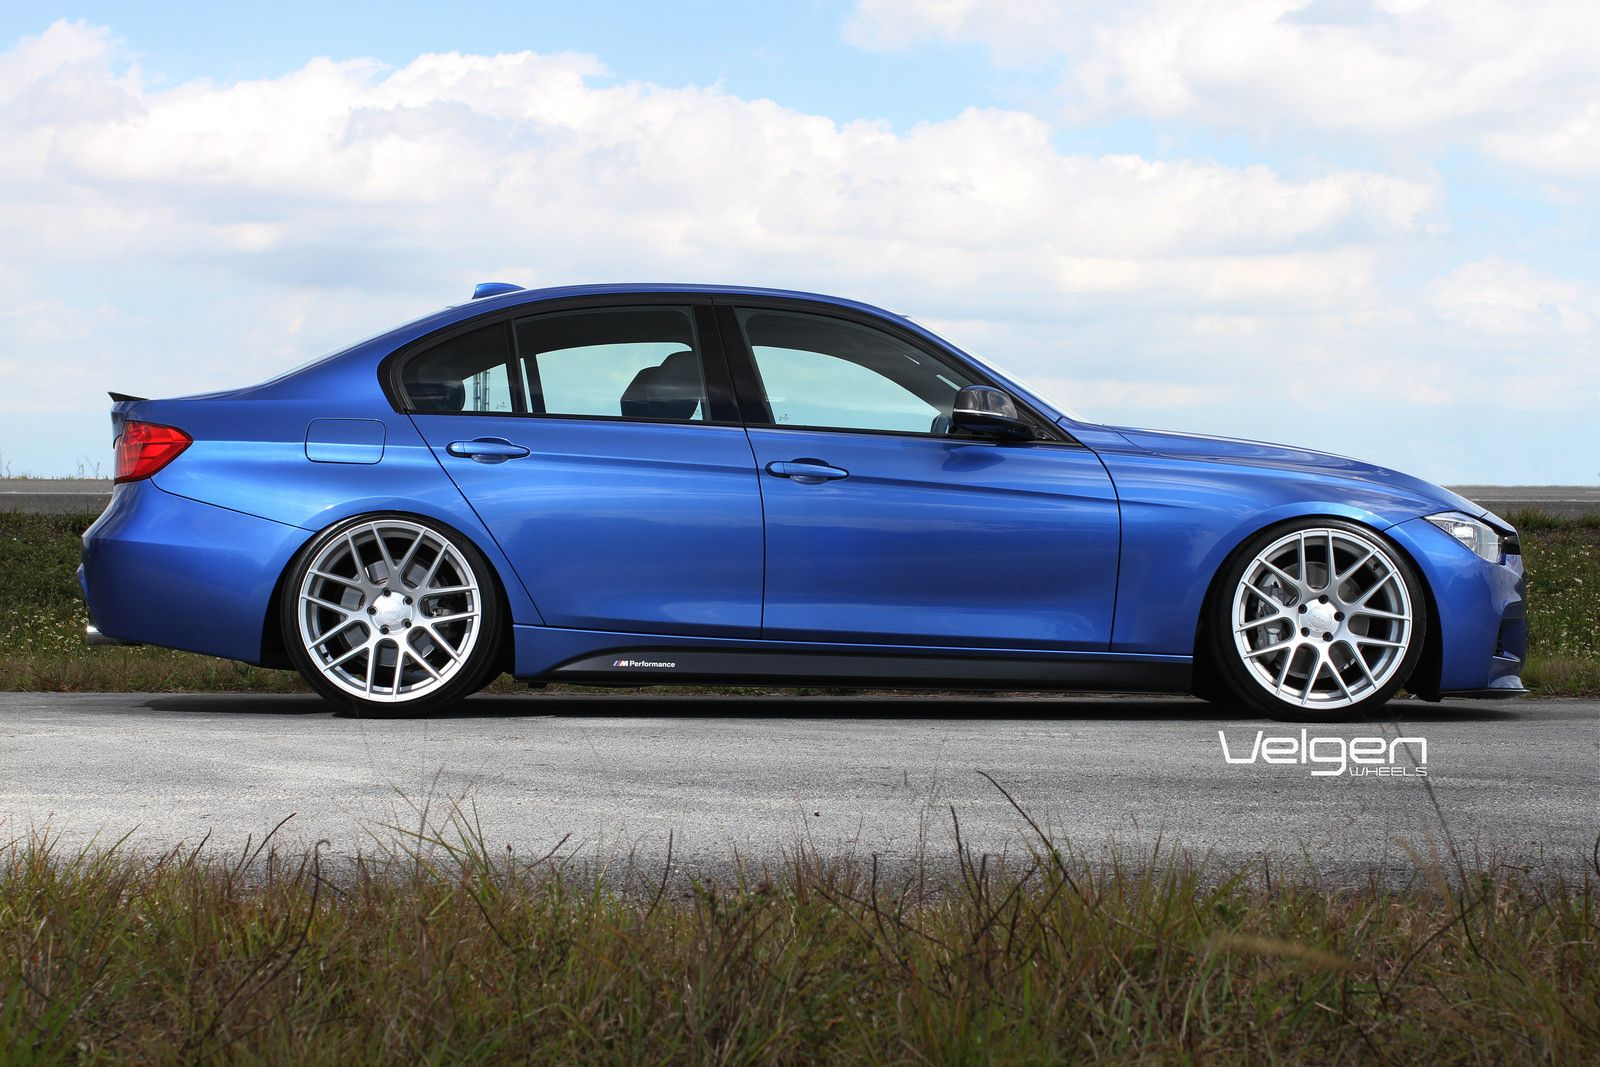 F30 On Coilovers 245 30 20 275 30 20 Bmw Bmw Cars Bmw Wheels